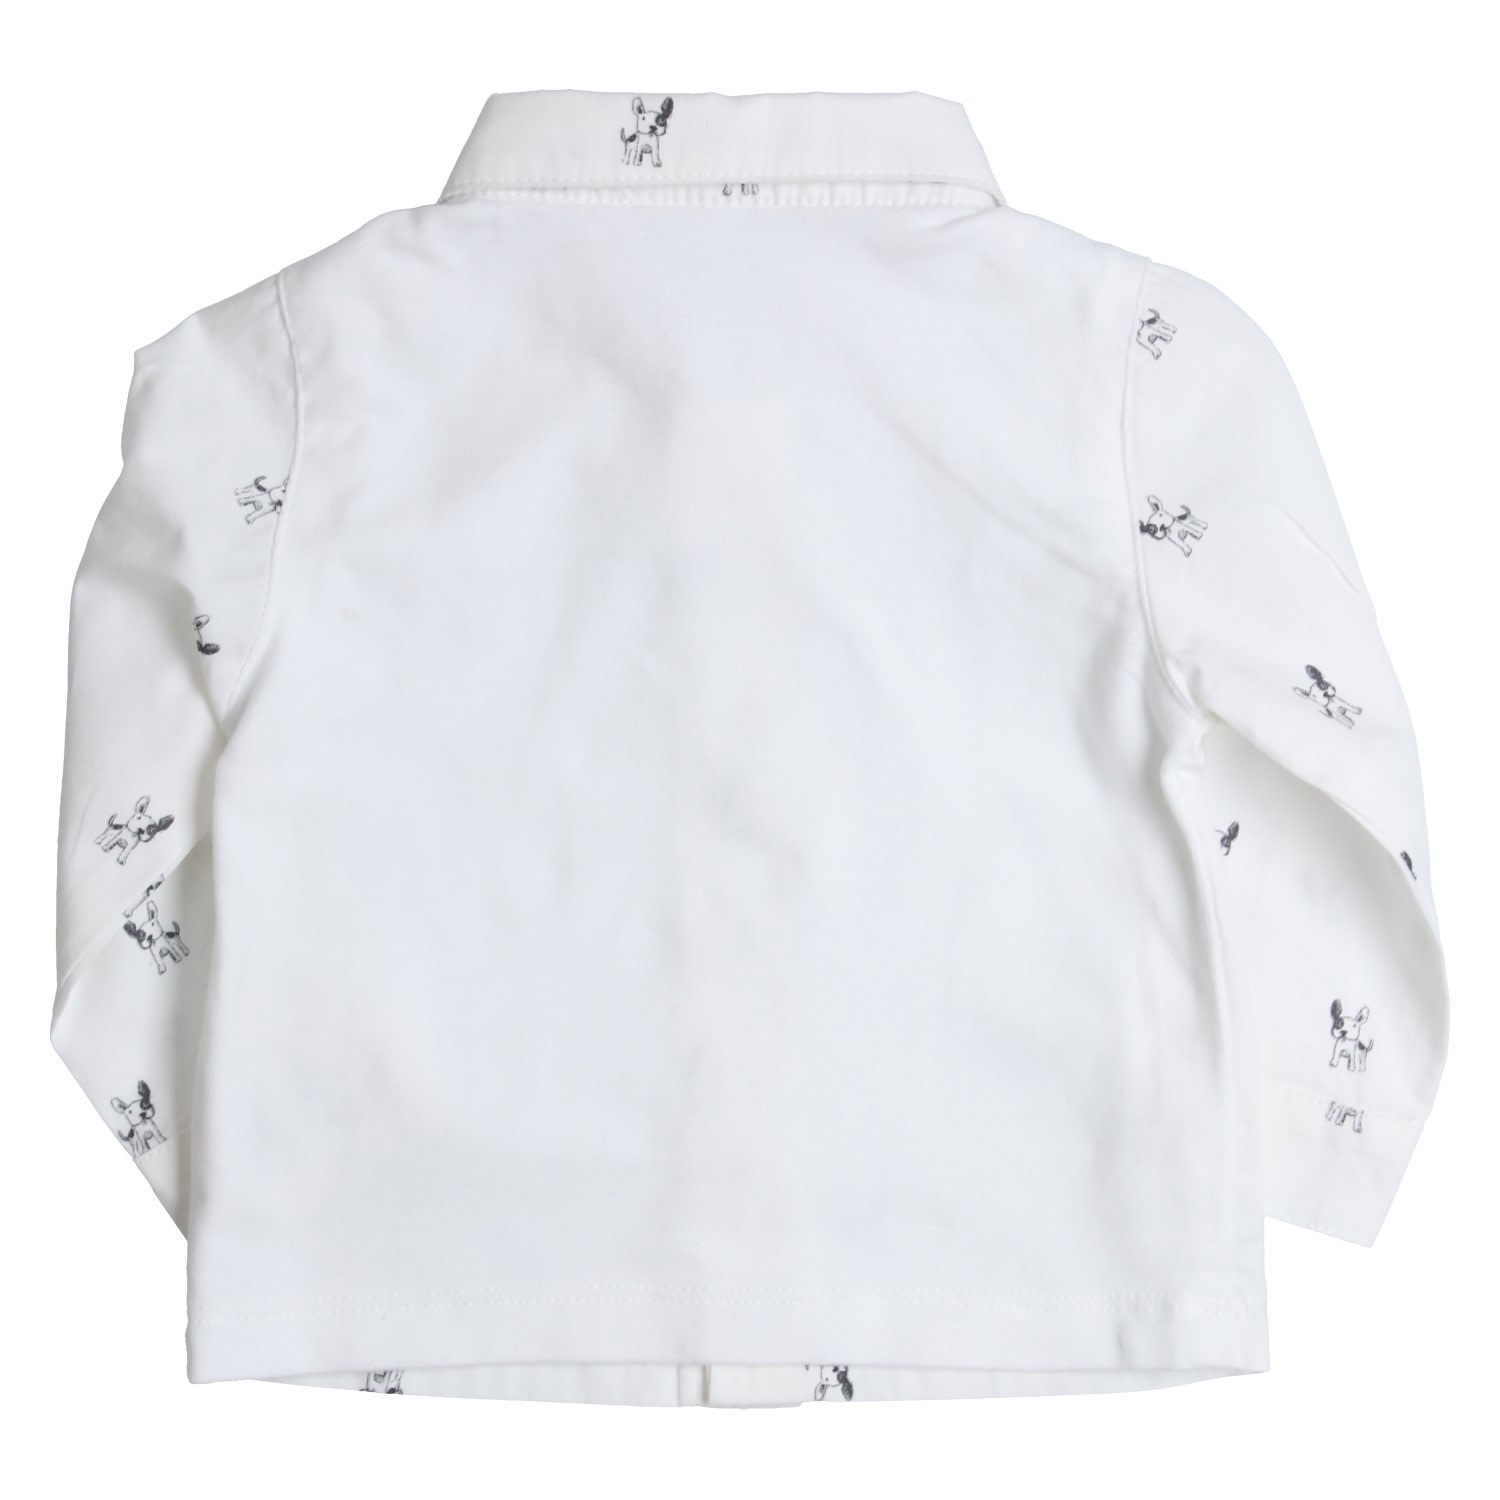 Gymp Shirt White/Grey Dog